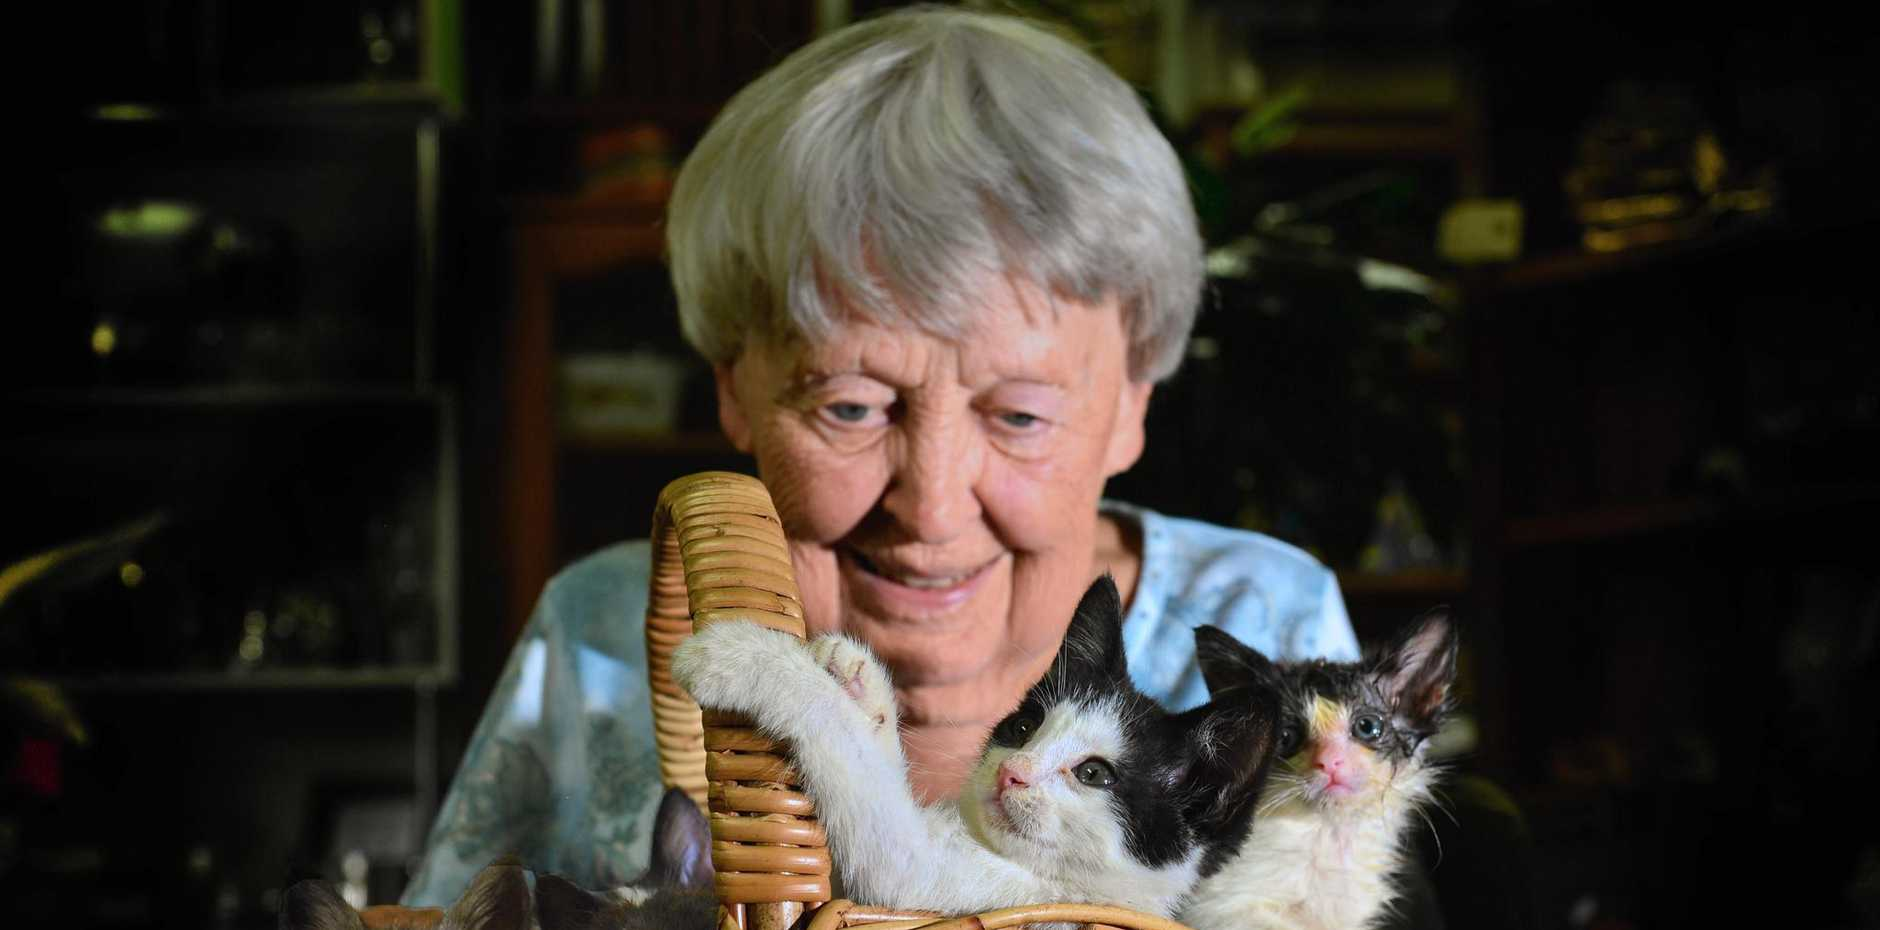 WAITING FOR A HOME: Some of the 80 kittens dumped at Gympie have been taken in by Down Memory Lane op-shop in Buderim and Billie Crundall helps look after them while they are waiting for new homes.